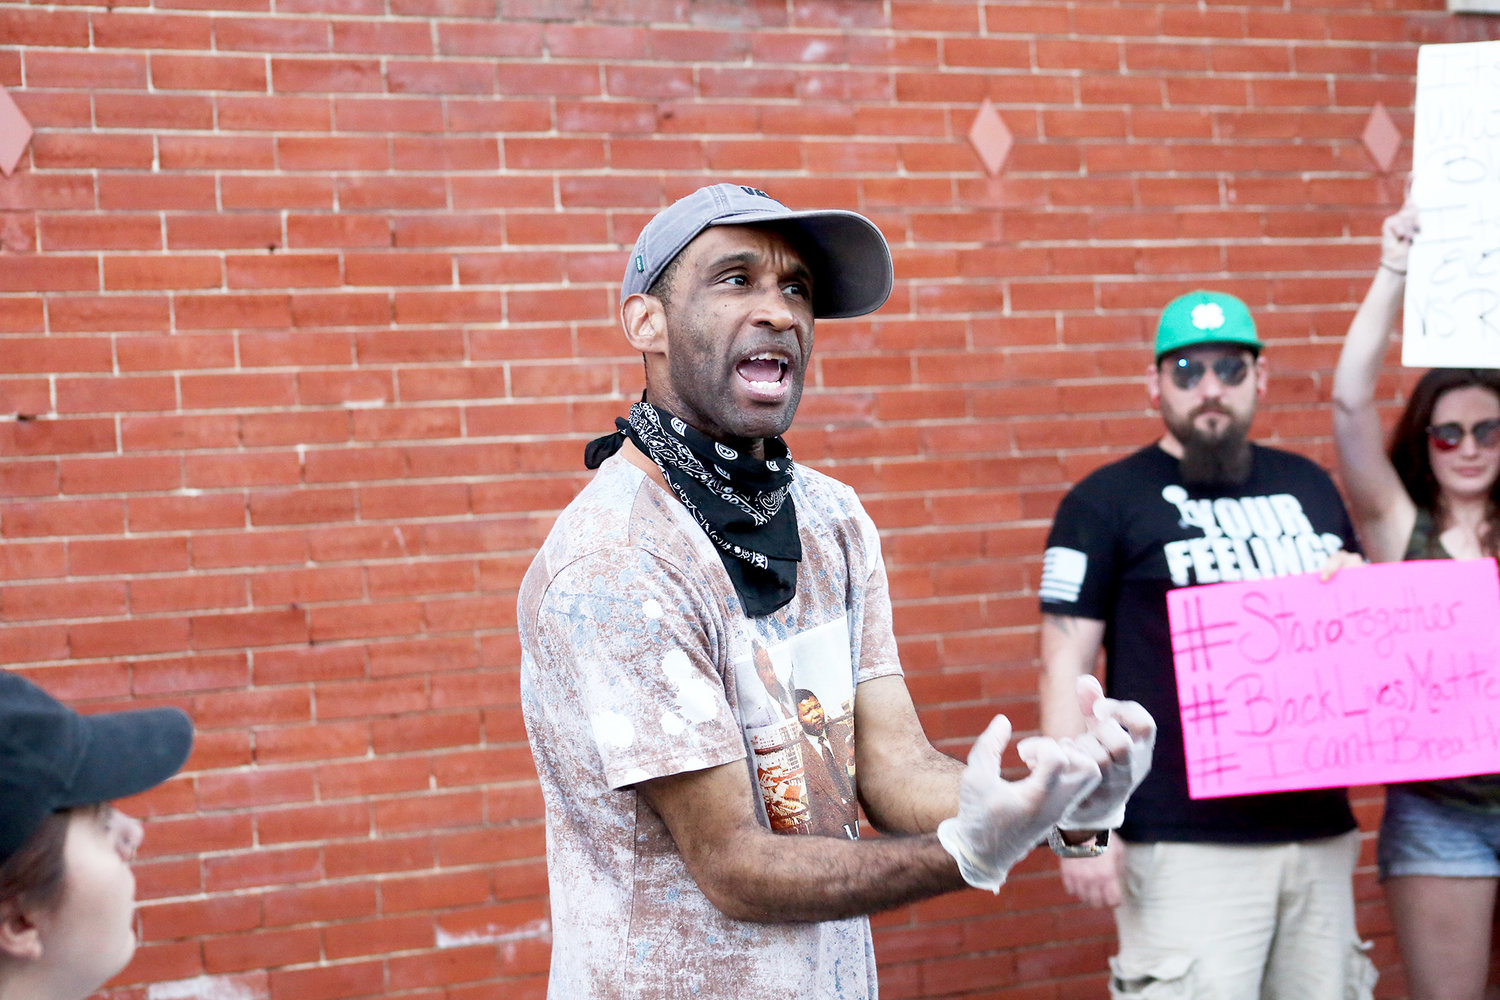 A PROTESTER voices his concerns during the protest on Church Street in front of the Cleveland Police Service Center.